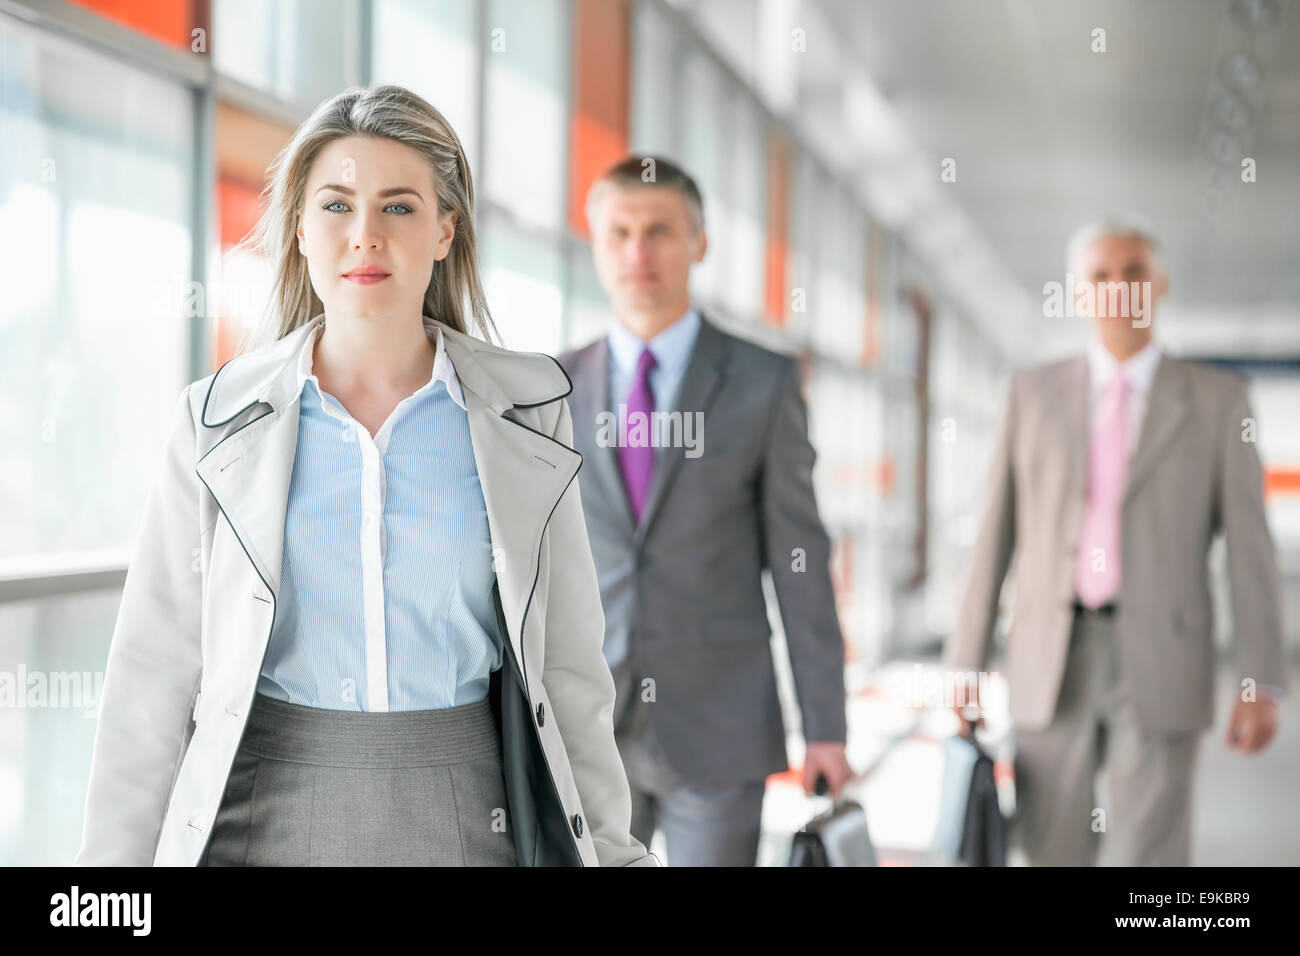 Beautiful young businesswoman walking with male colleagues in background at train platform - Stock Image